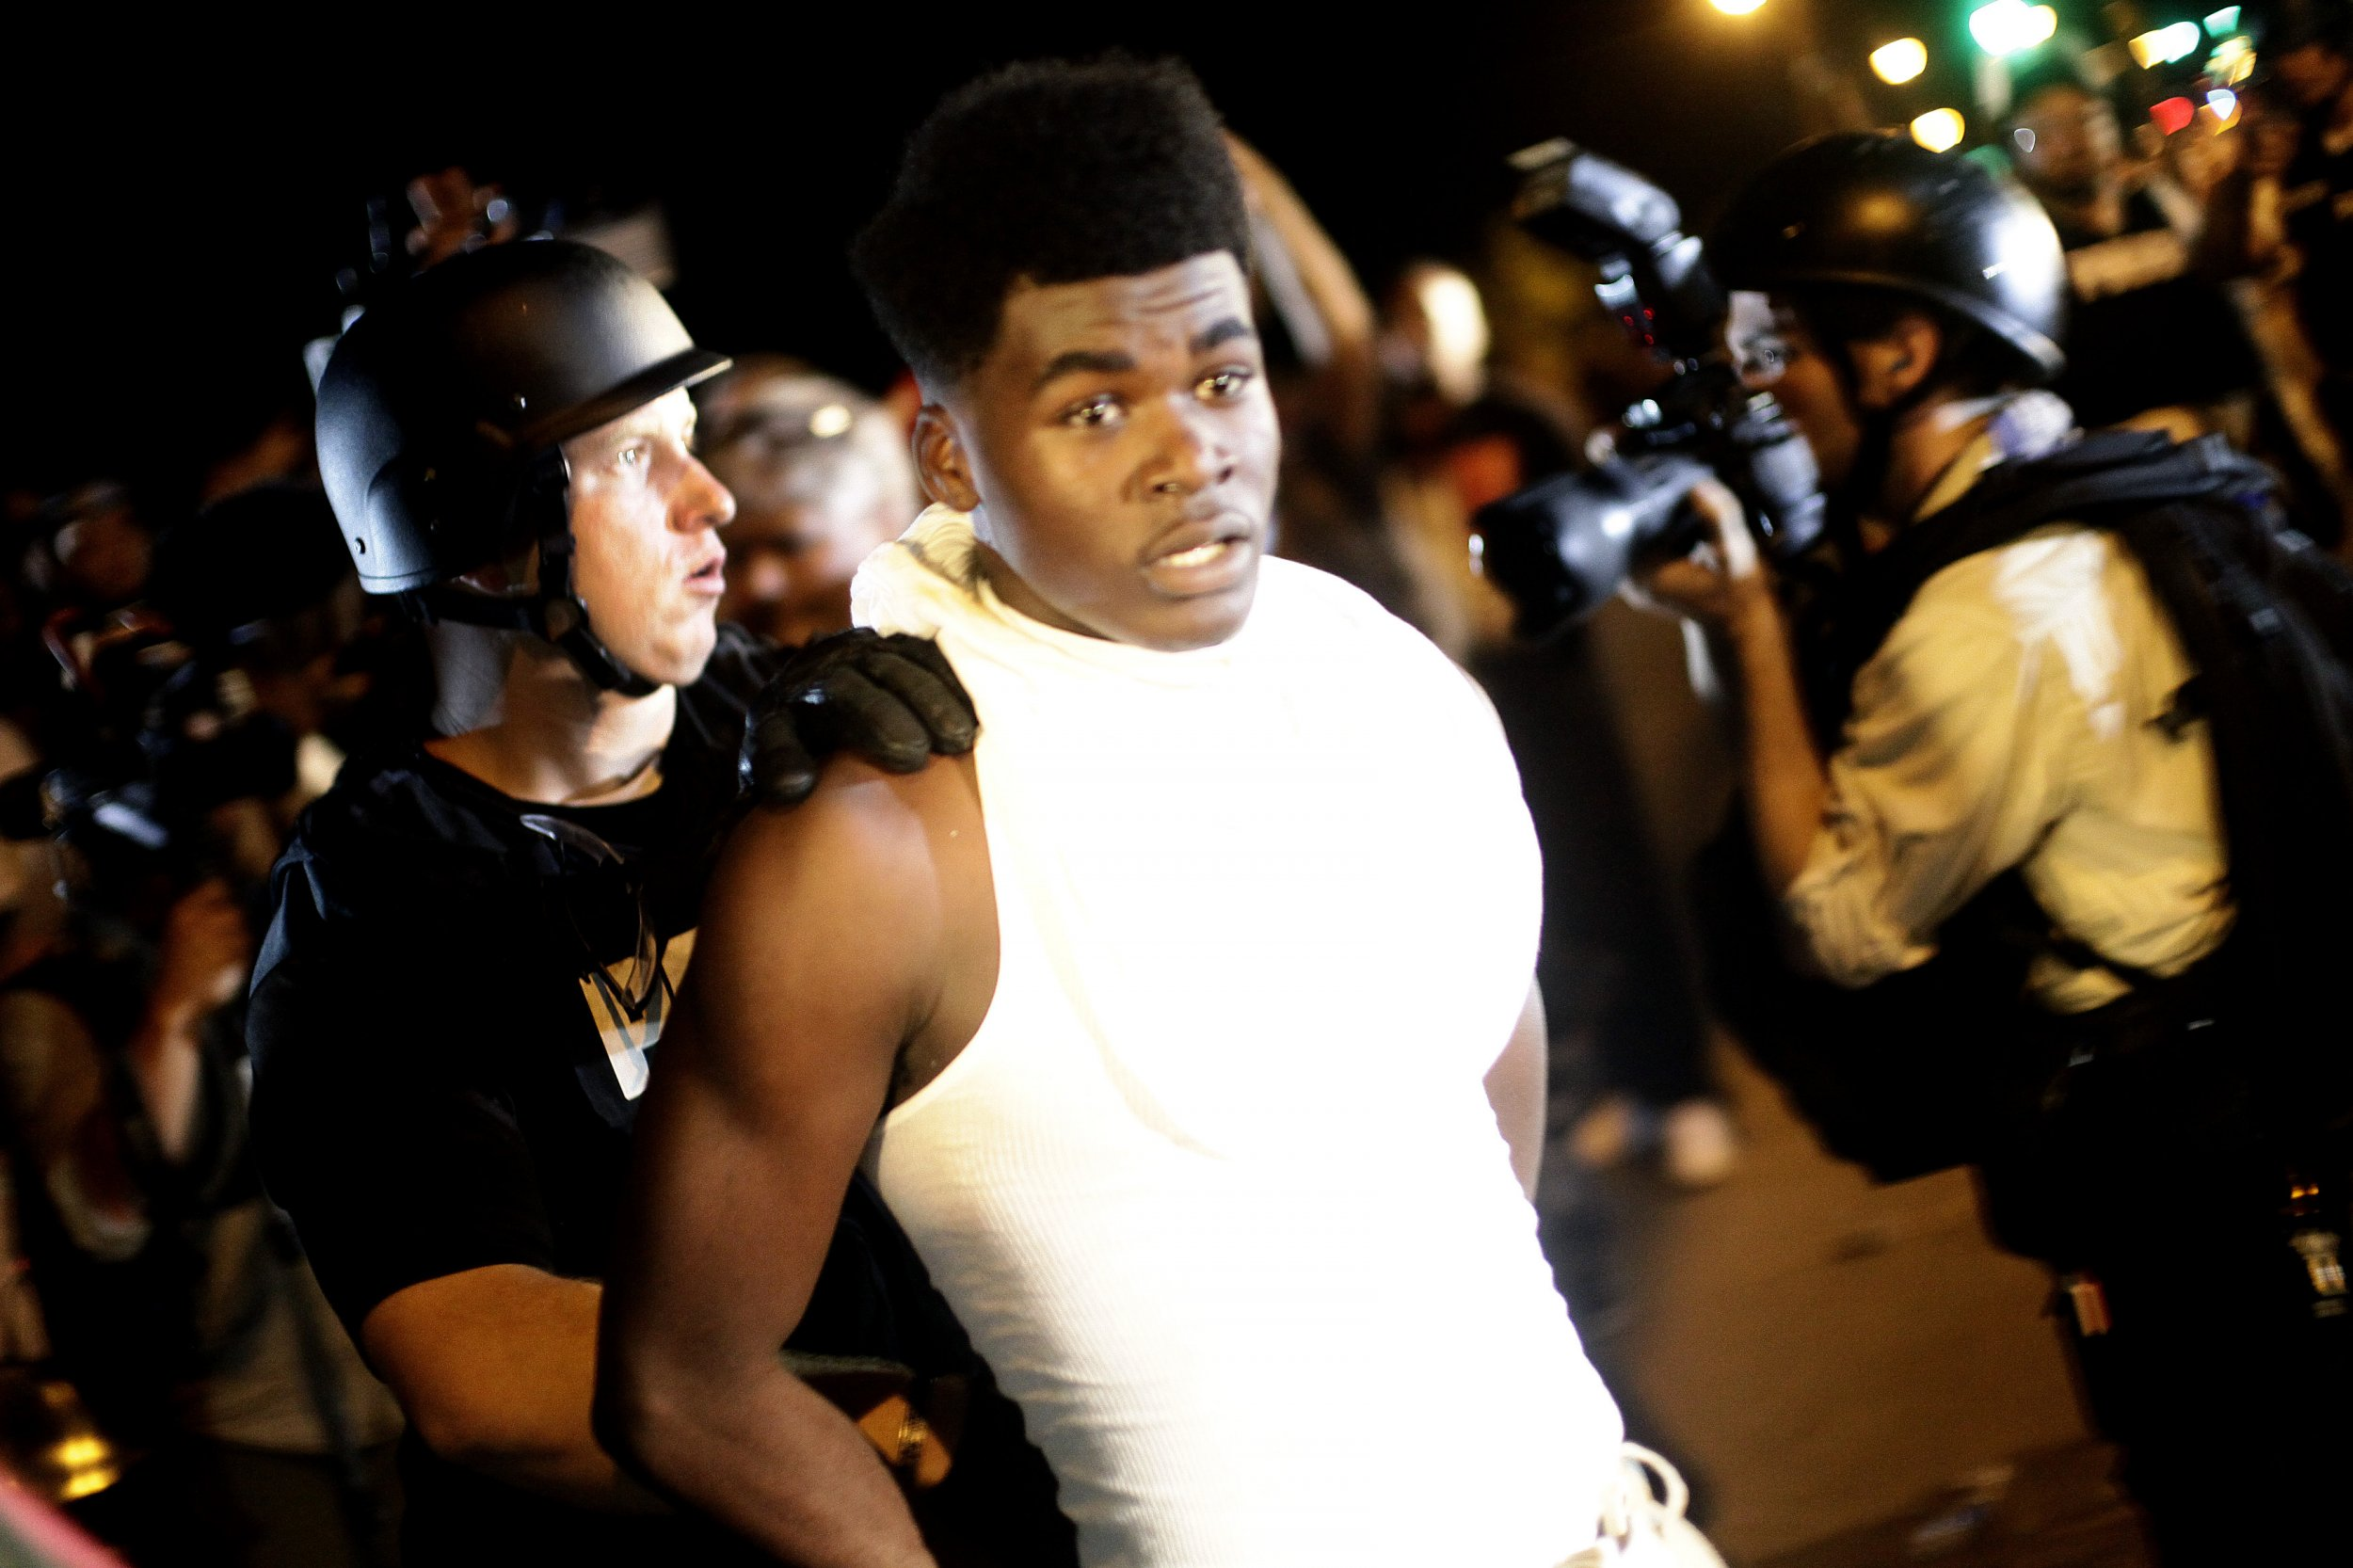 15 Most Outrageous Examples Of Police Misconduct In The Doj Report